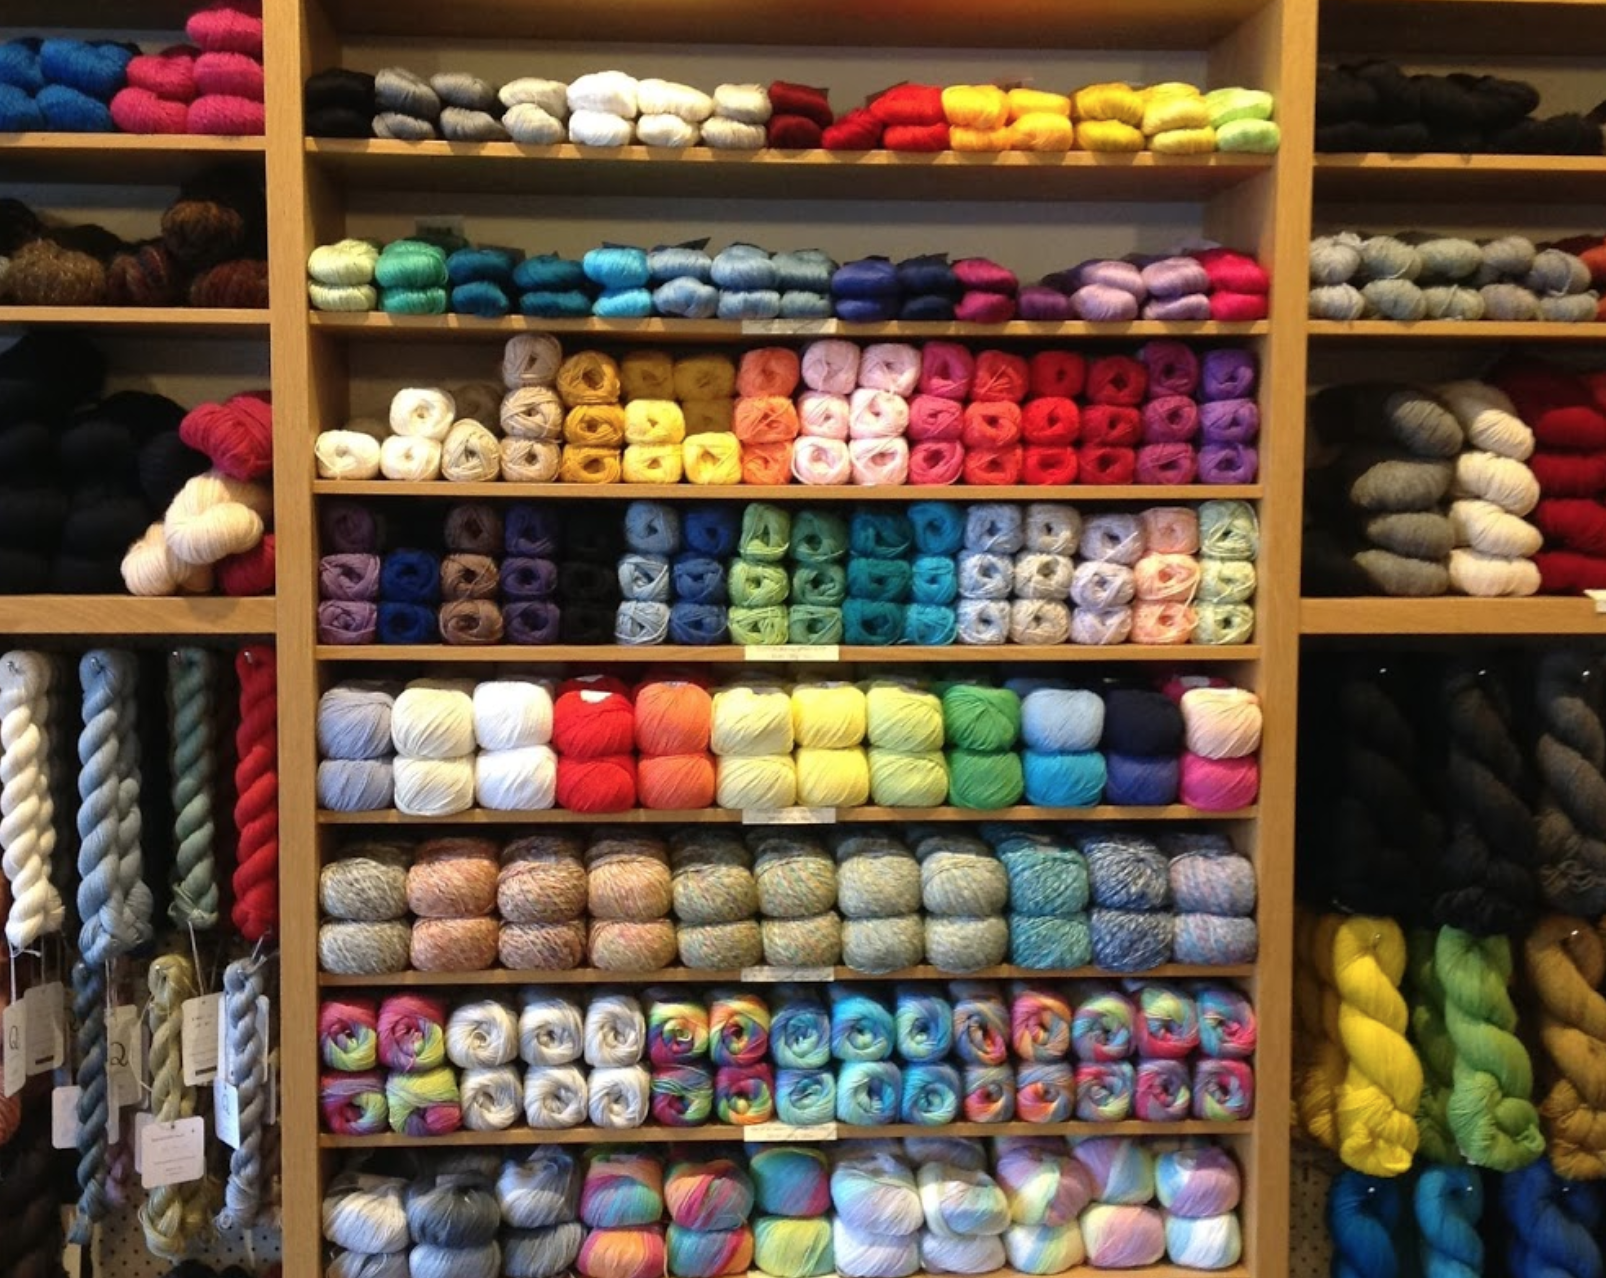 Yarn + Co. - Address: 59 Smith Street, Fitzroy, Melbourne, VictoriaPhone: 03 9416 3306https://www.yarnandco.com/